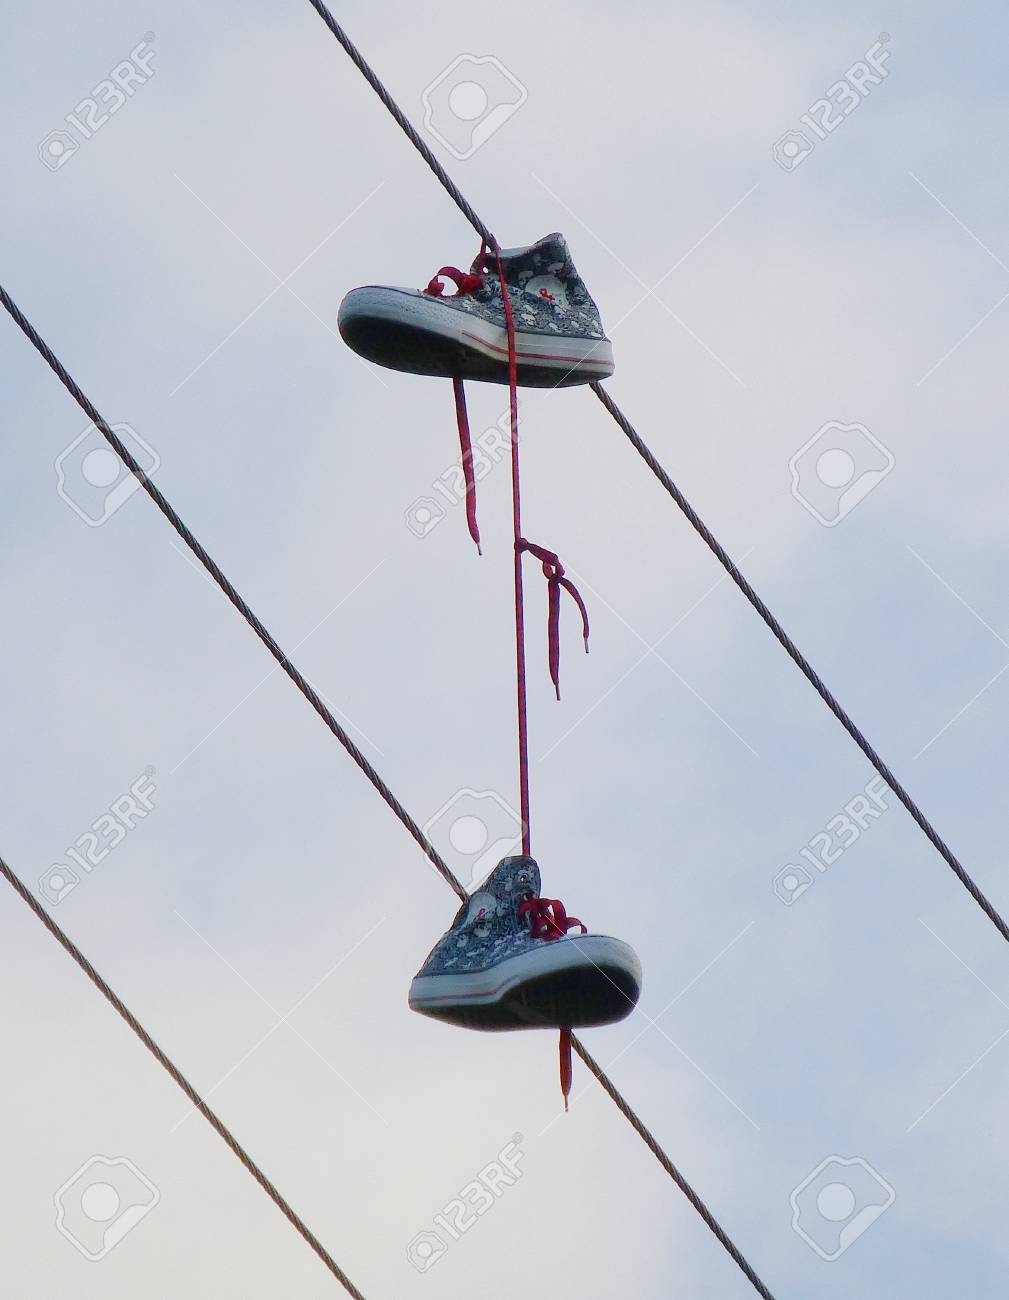 Photo Of A Pair Of Old Sneakers Hanging On The Wire Stock Photo ...